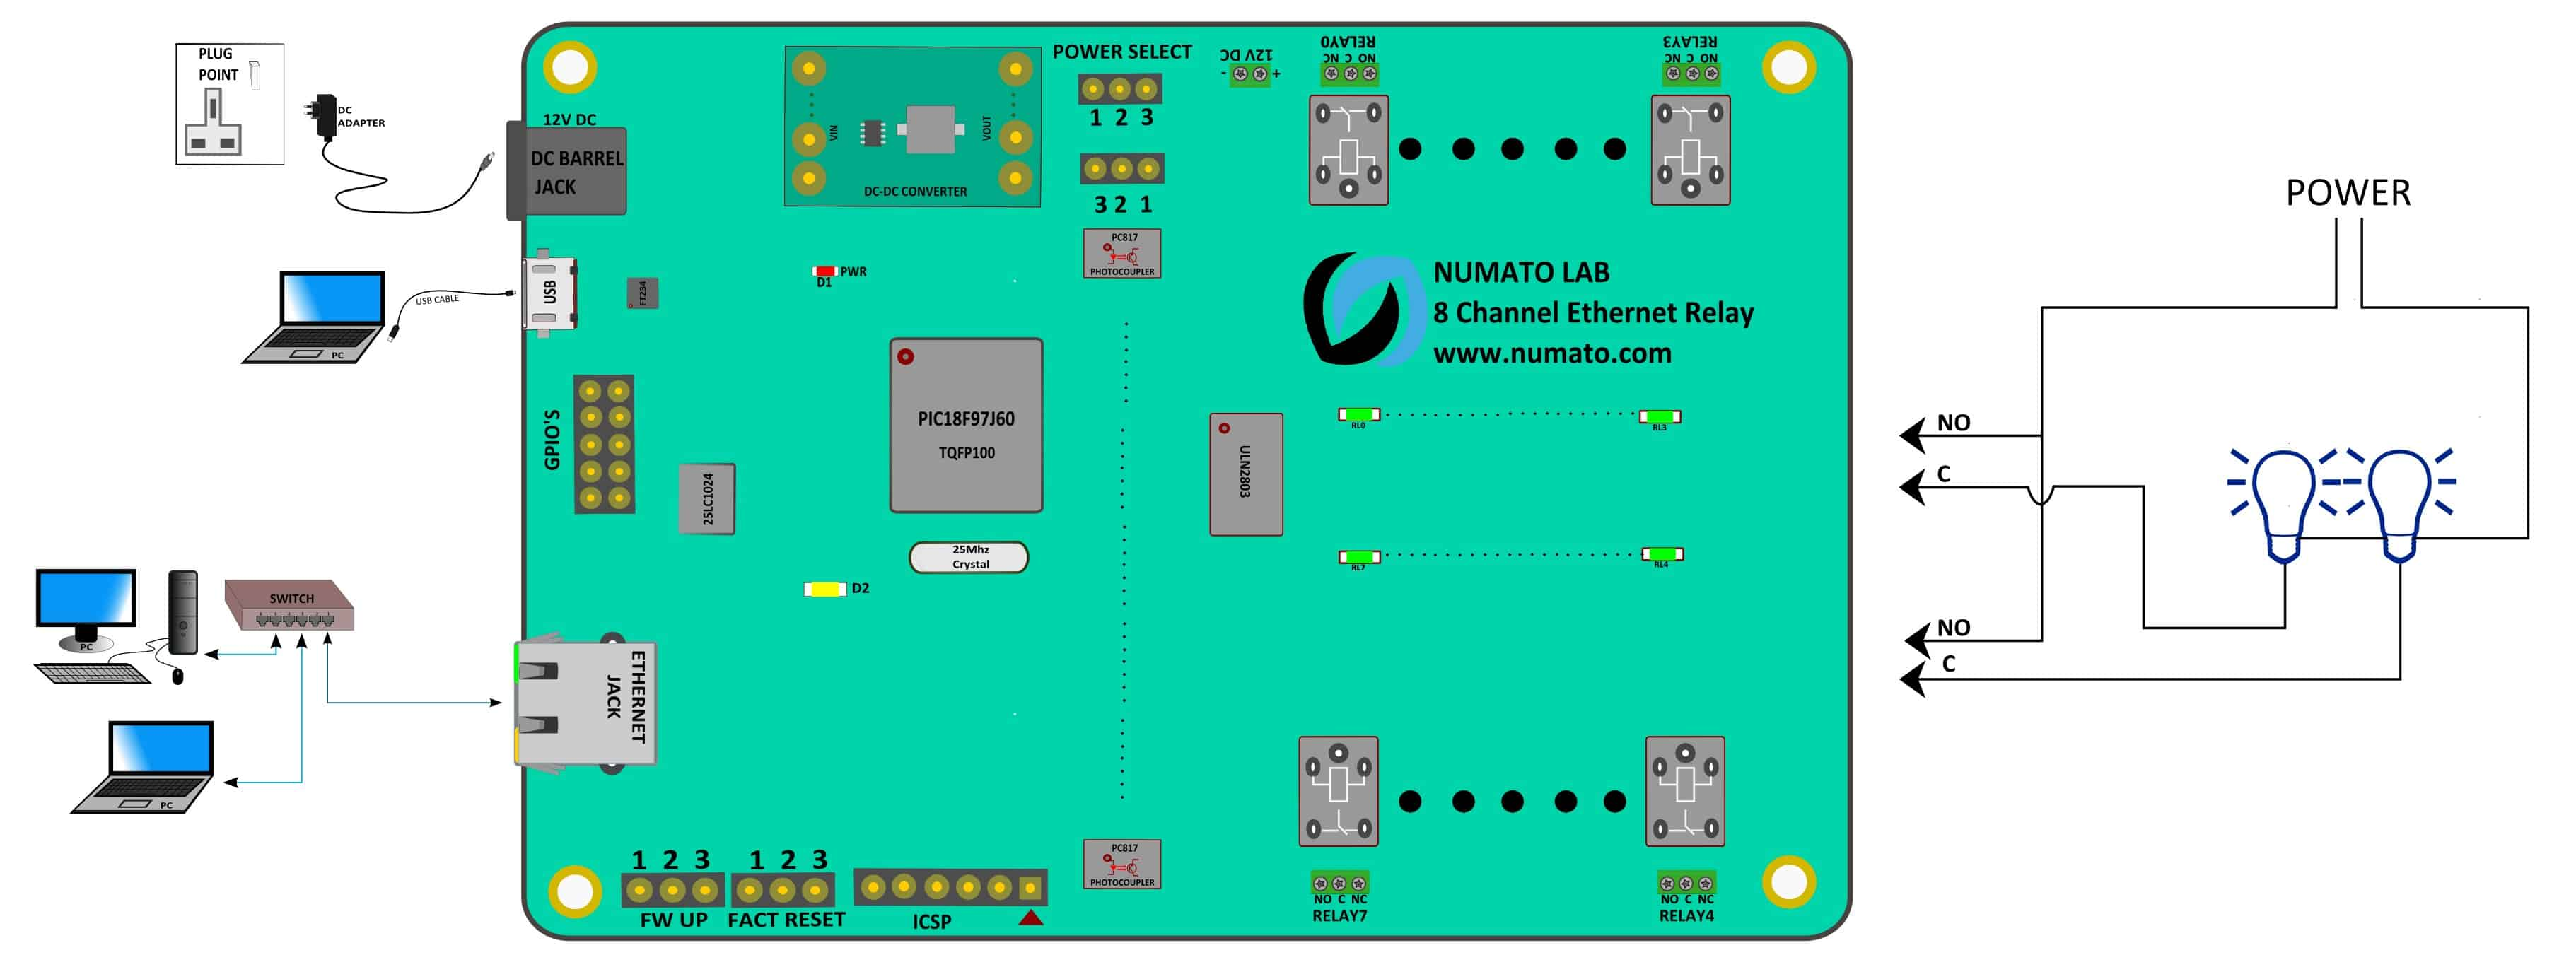 8 Channel Ethernet Relay Module – Numato Lab Help Center